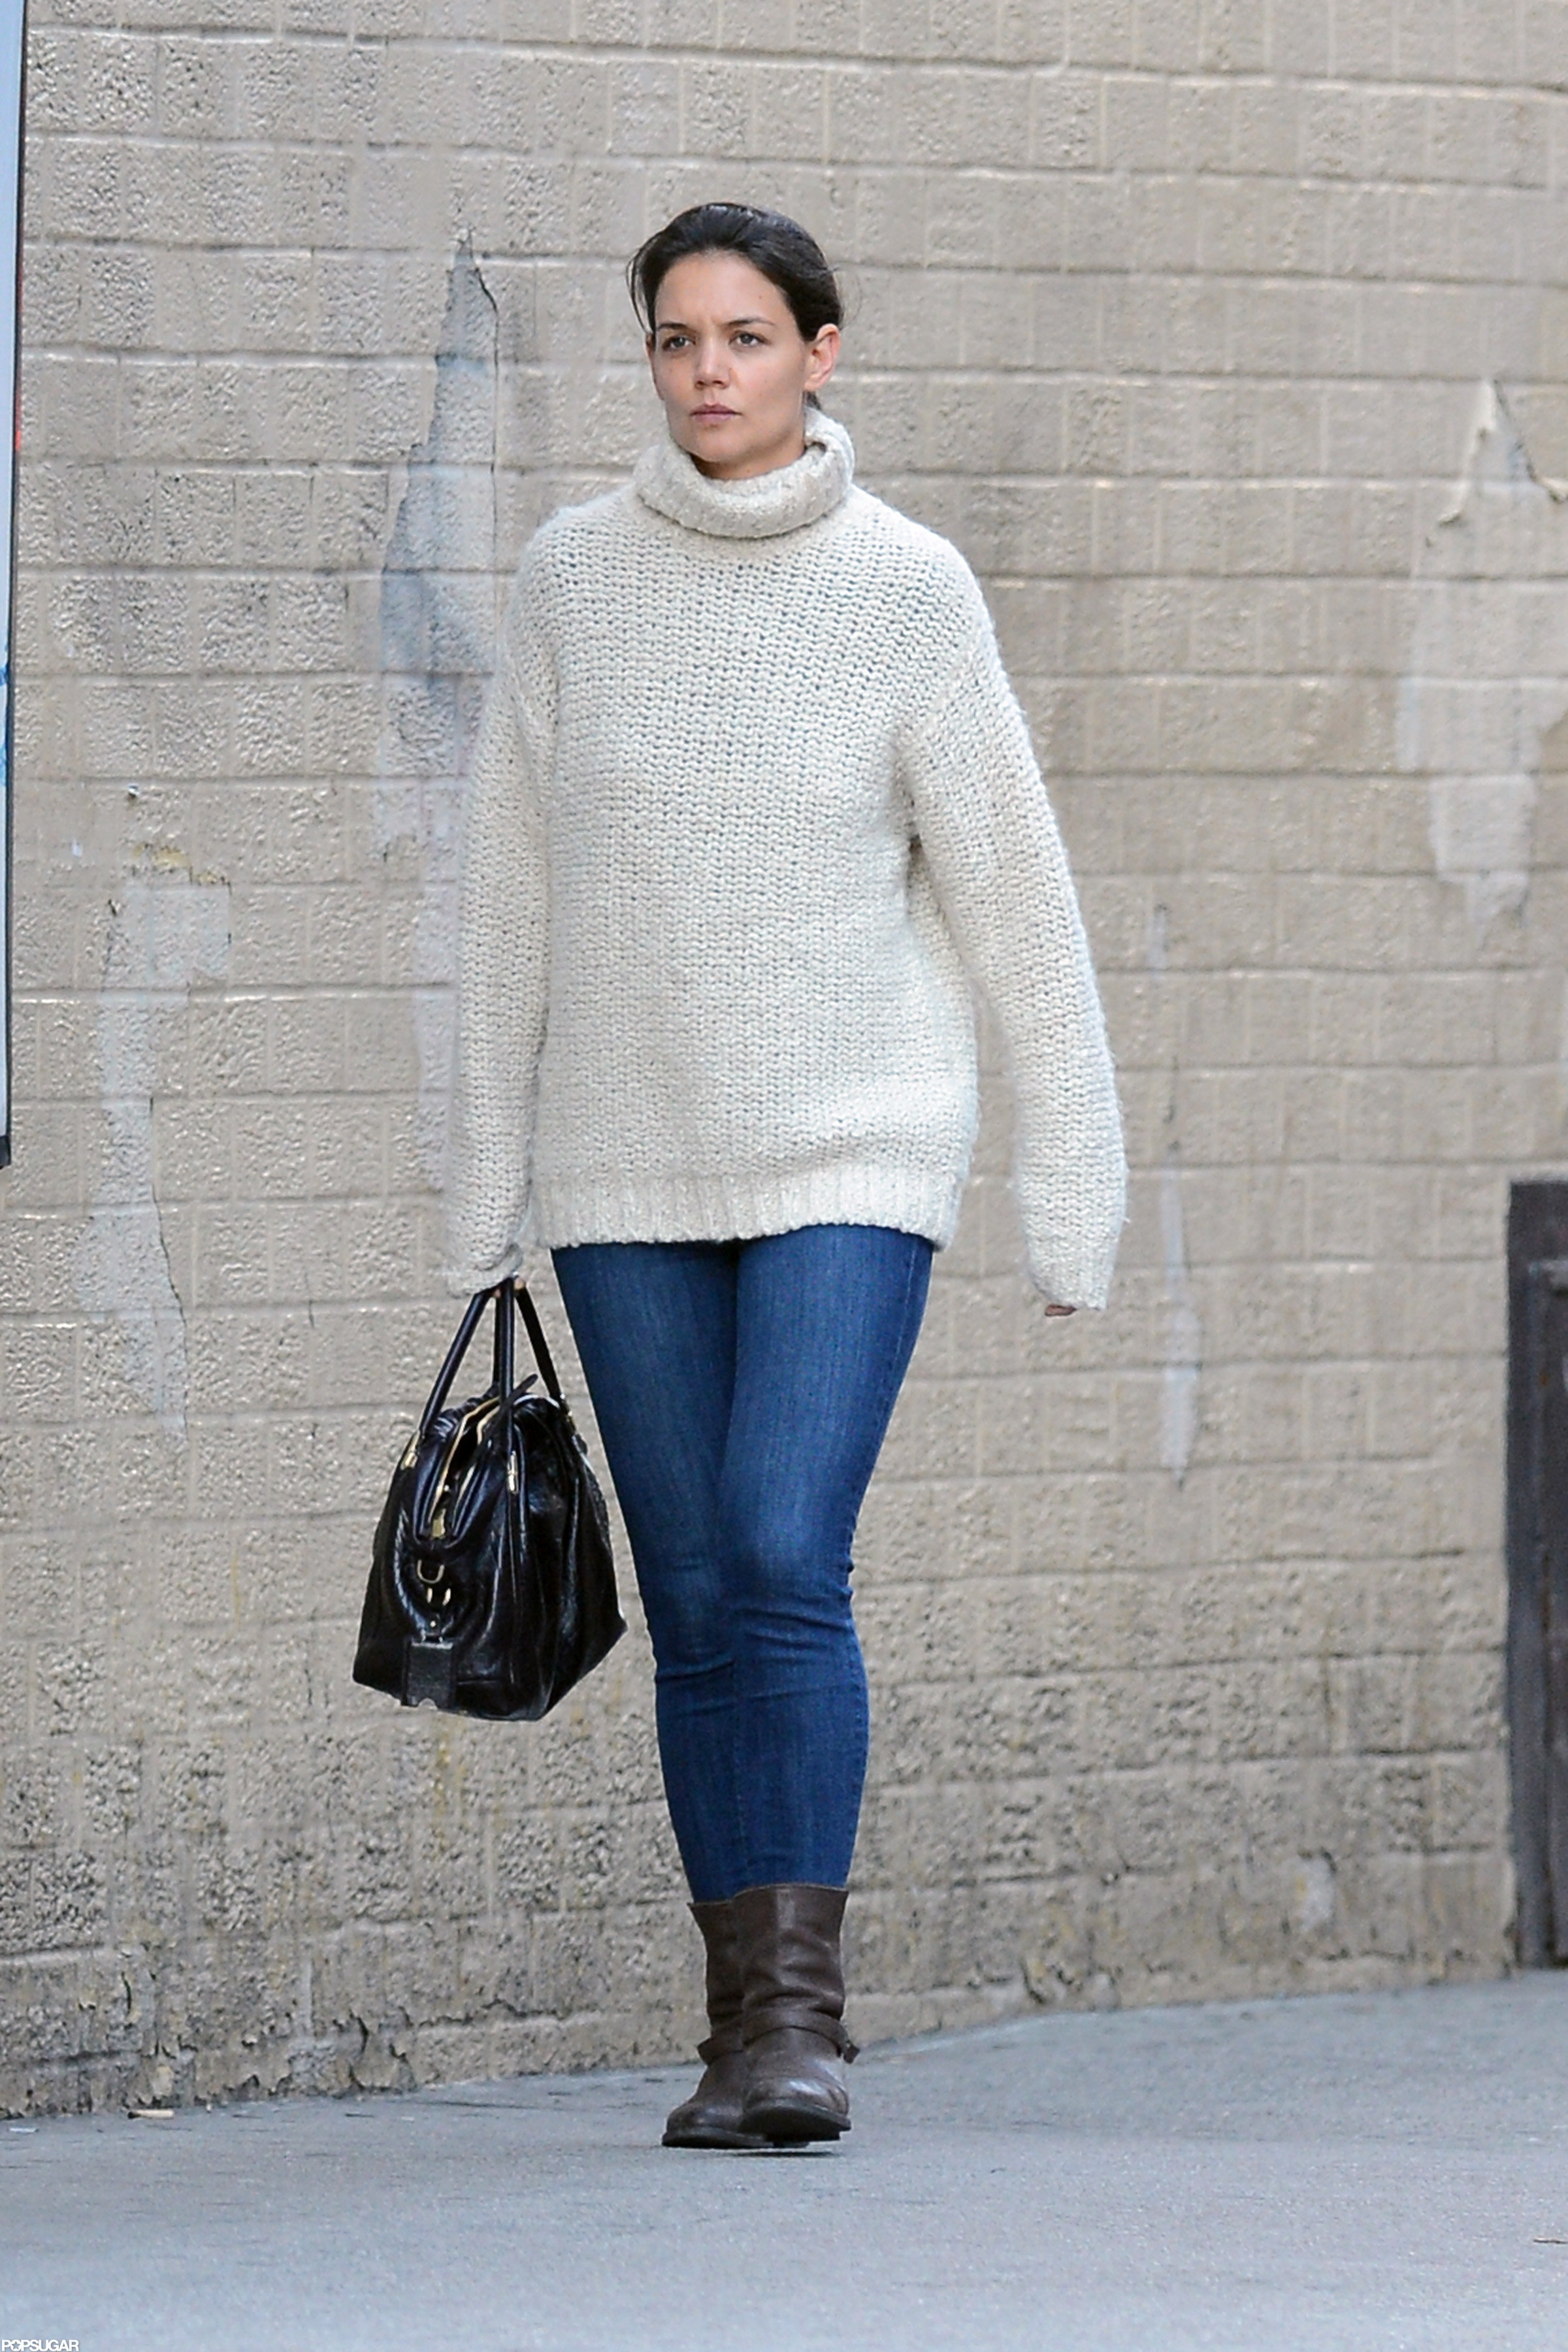 Katie Holmes stepped out in NYC